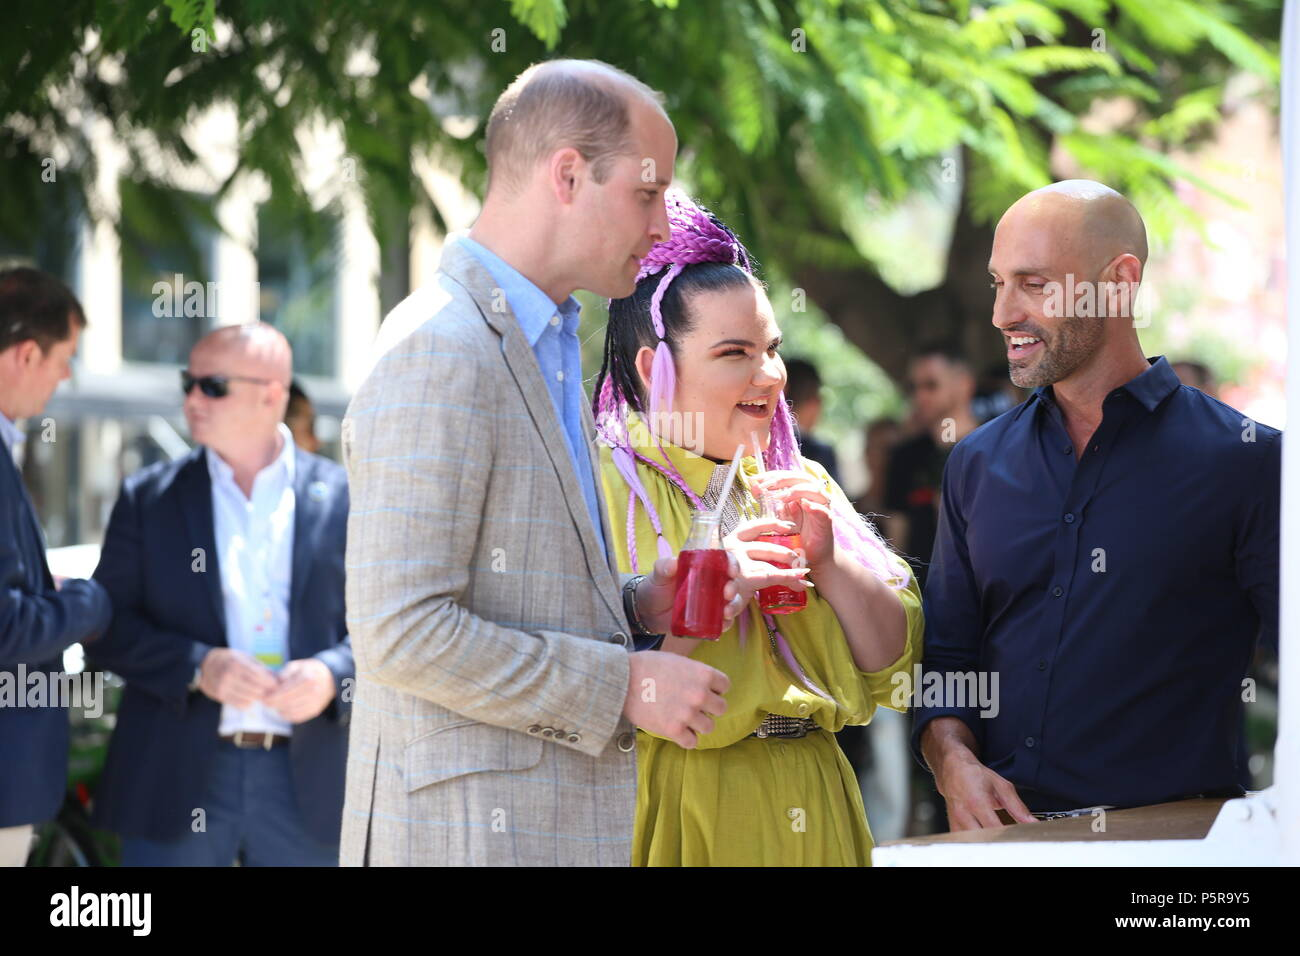 The Duke of Cambridge meets singer Netta Barzilai, who won the 2018 Eurovision Song Contest, at the Espresso Bar Kiosk at Rothschild Boulevard in Tel Aviv, Israel, during his official tour of the Middle East. (Photo by Chris Jackson/Getty Images). - Stock Image